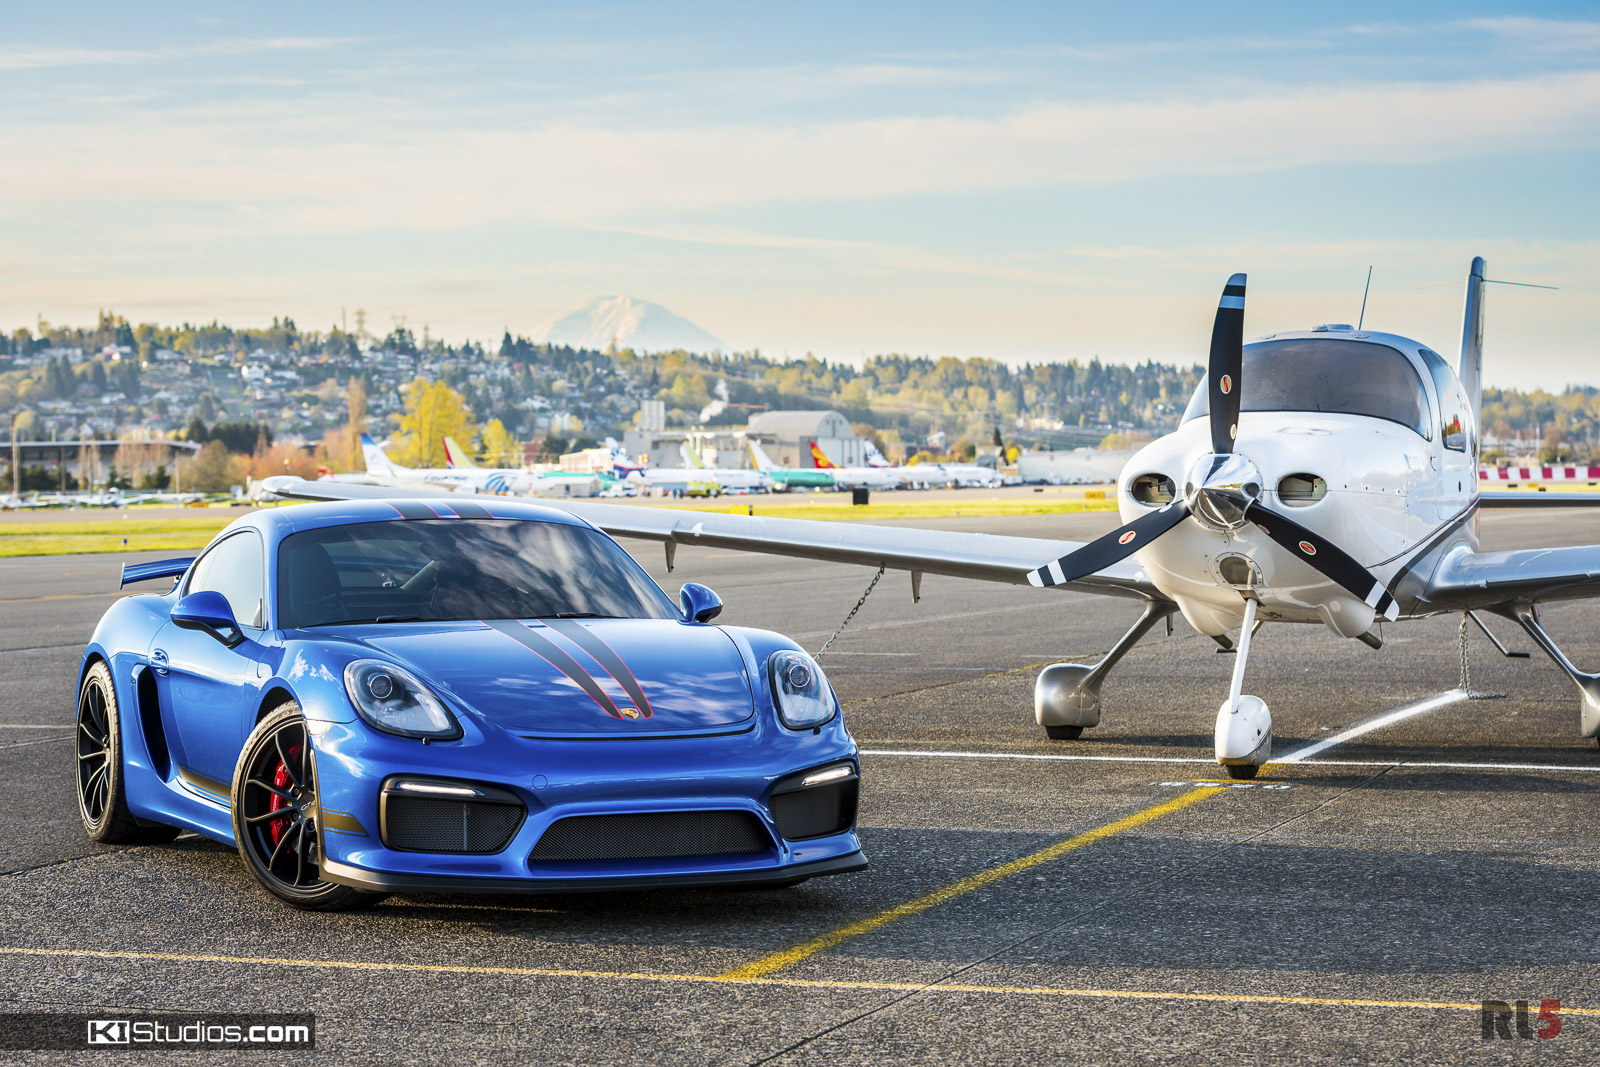 Porsche 981 Cayman GT4 Photo Contest Winner